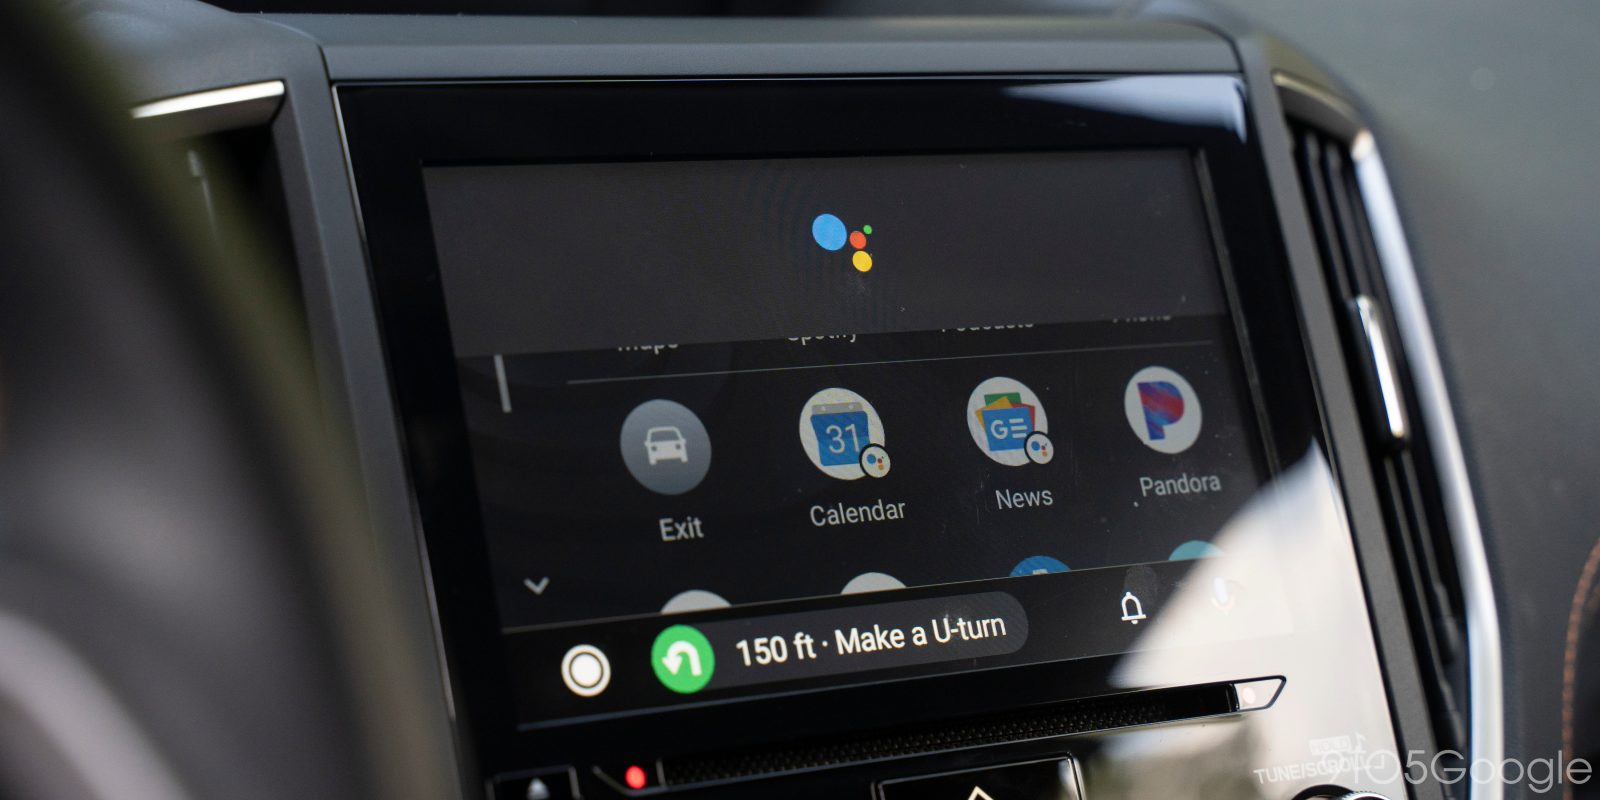 Android Auto is testing new designs for Google Assistant, rolls out weather icon